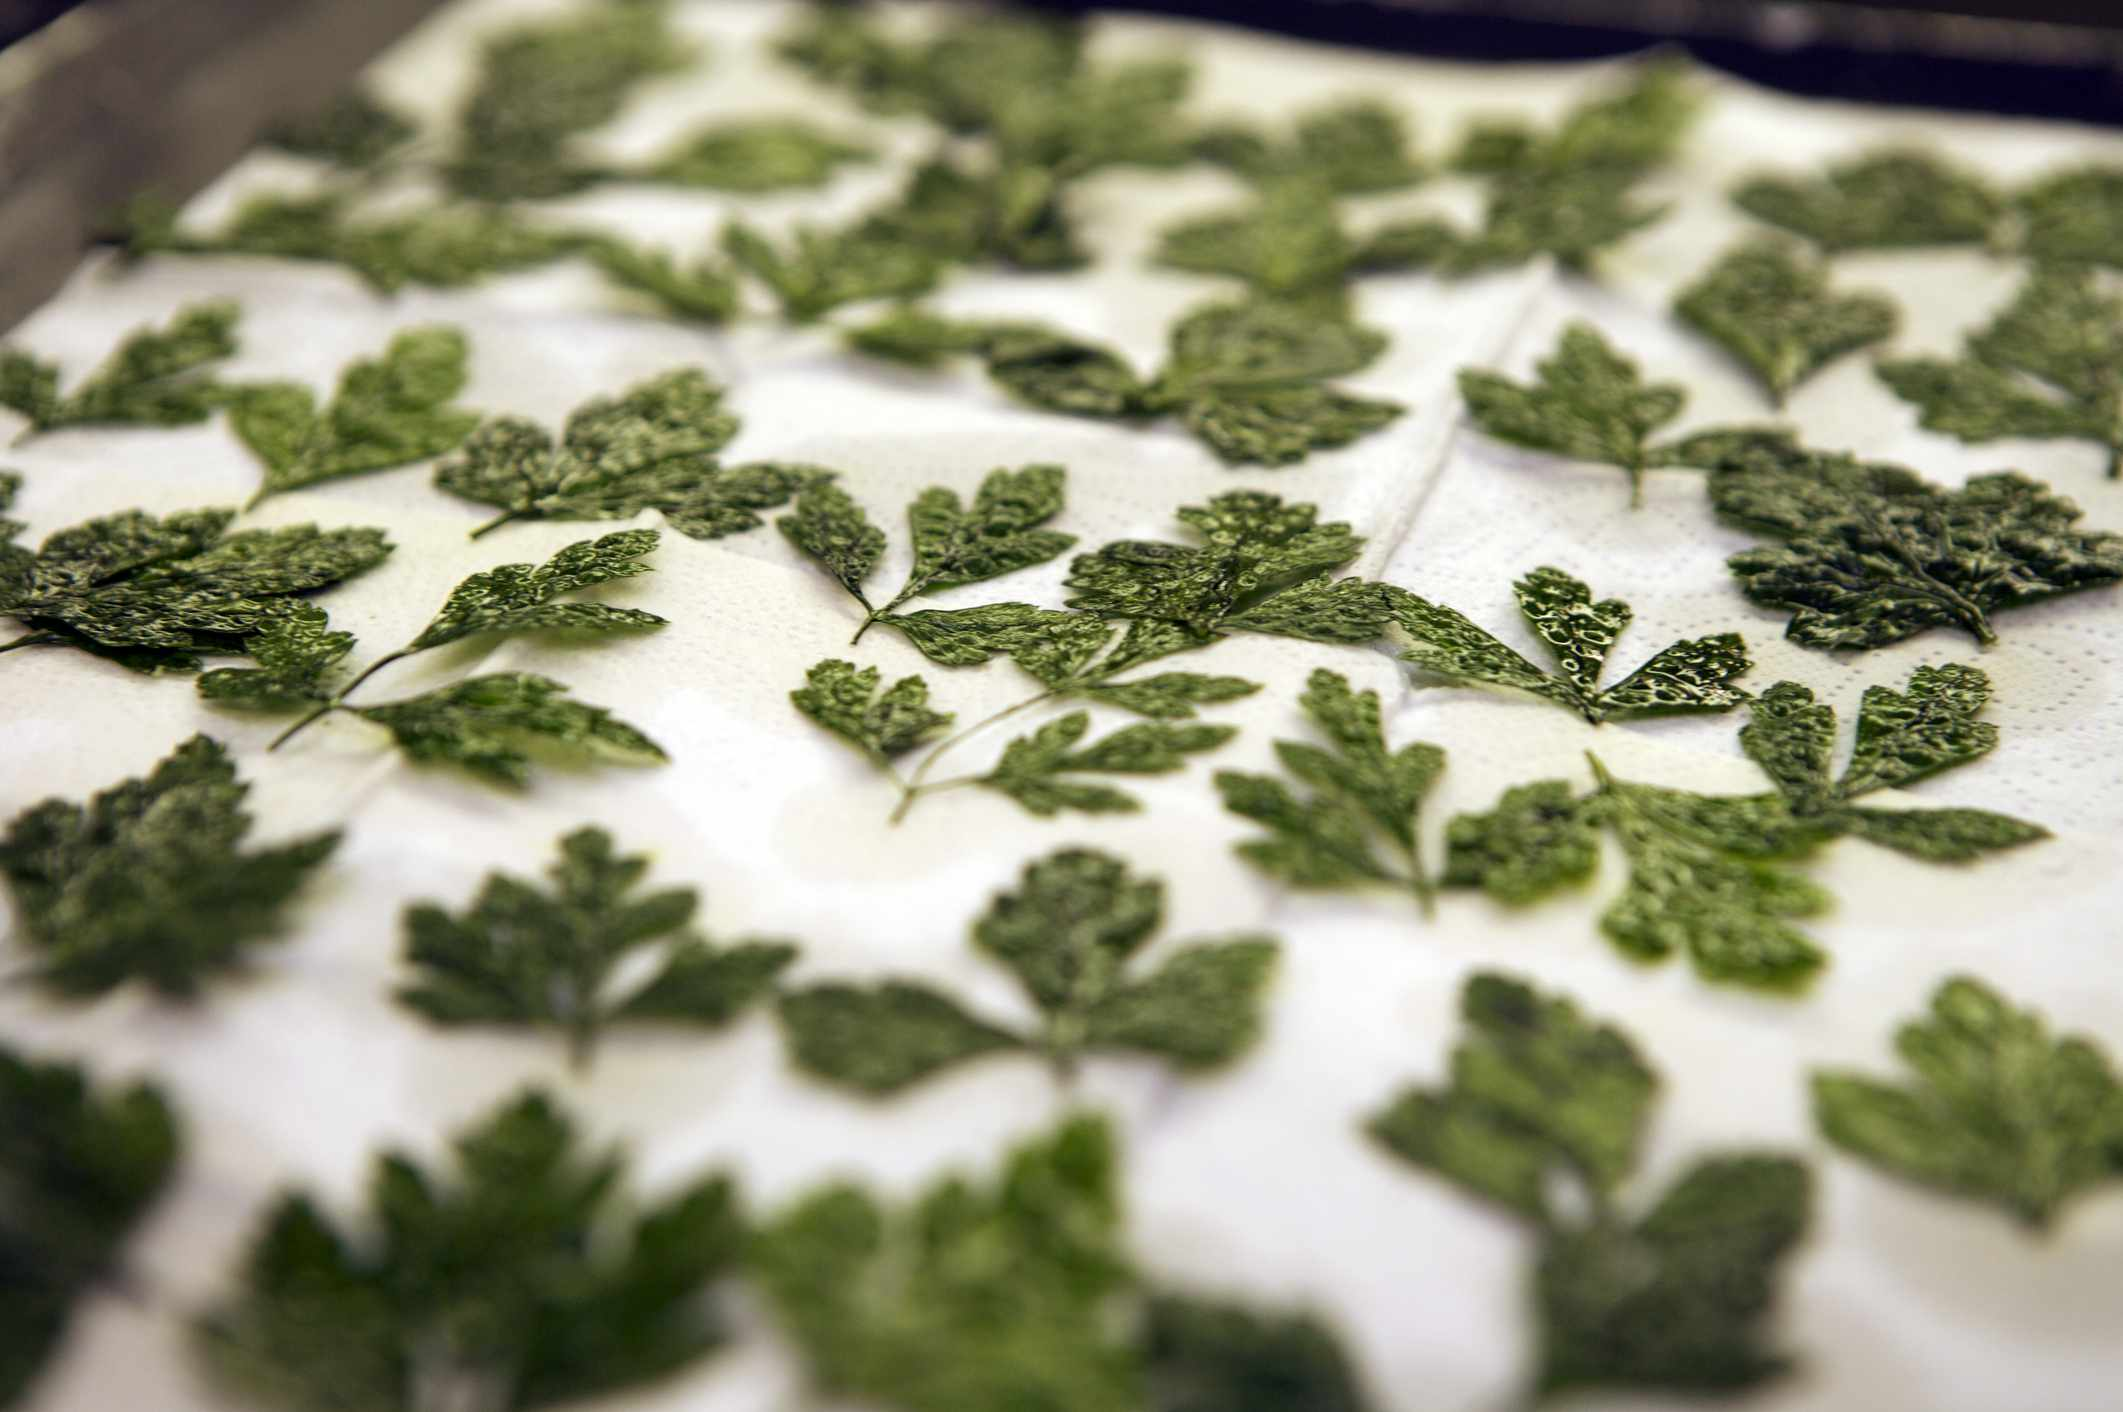 Parsley leaves being dried on an oven tray